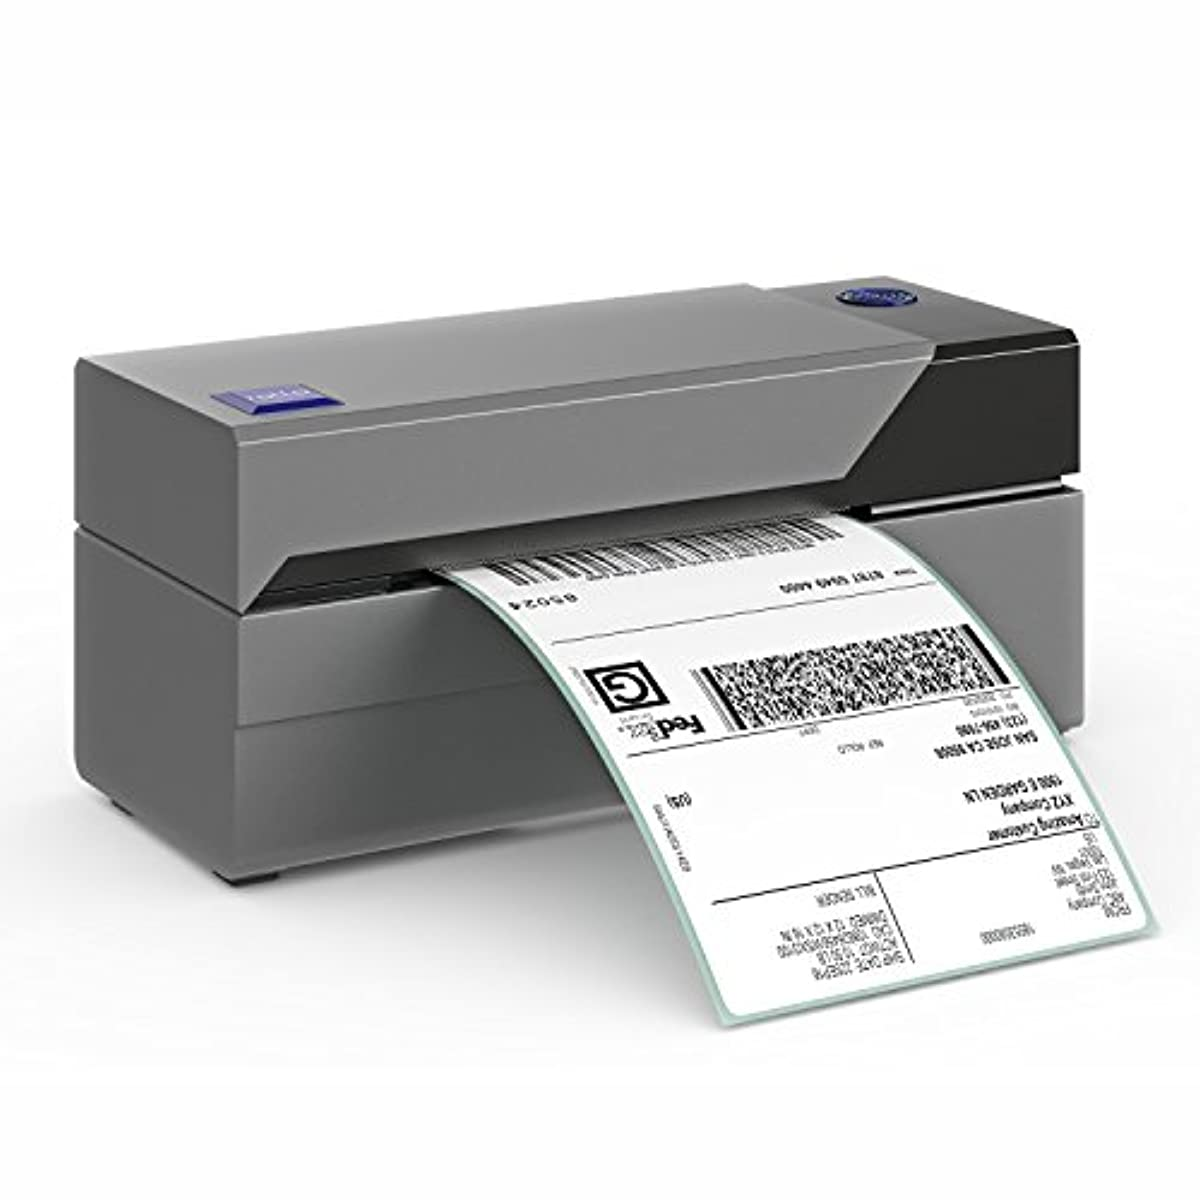 It's just a picture of Inventive Ul Approved Label Printer